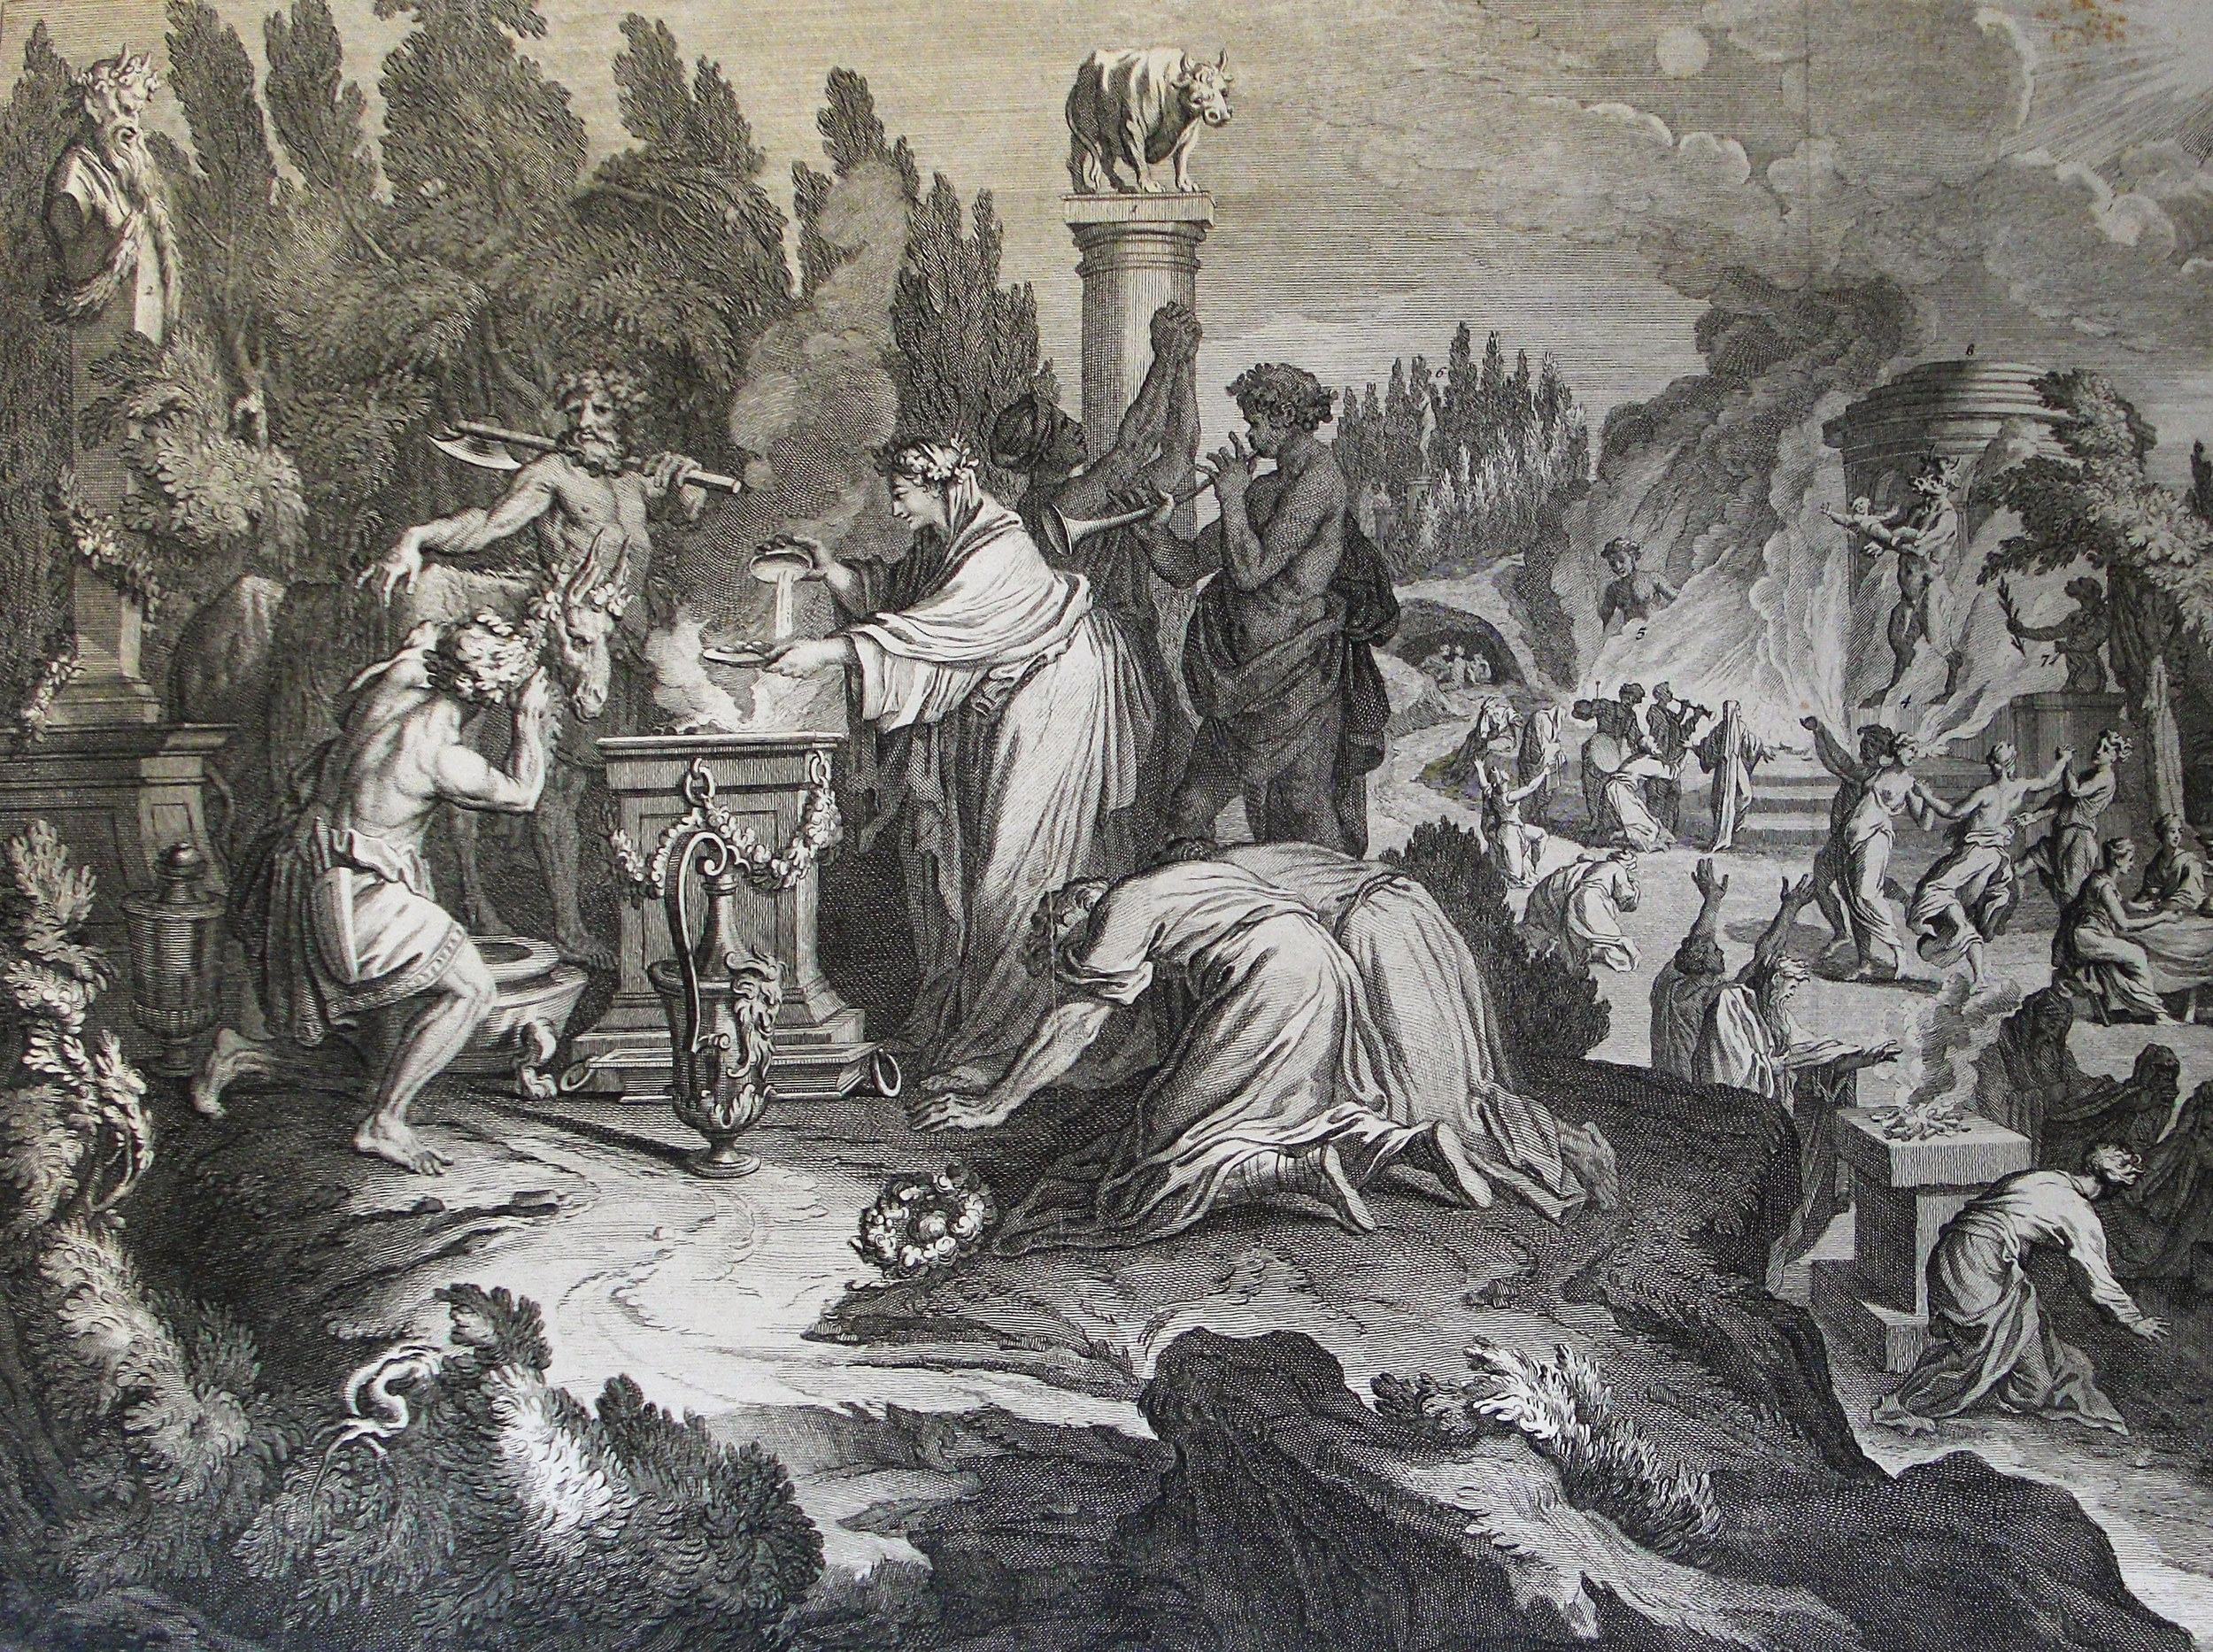 The Phillip Medhurst Picture Torah 586. Idolatry with Baal-peor. Numbers cap 25 vv 1-8.  By Philip De Vere (Own work) [CC BY-SA 3.0 (http://creativecommons.org/licenses/by-sa/3.0)], via Wikimedia Commons